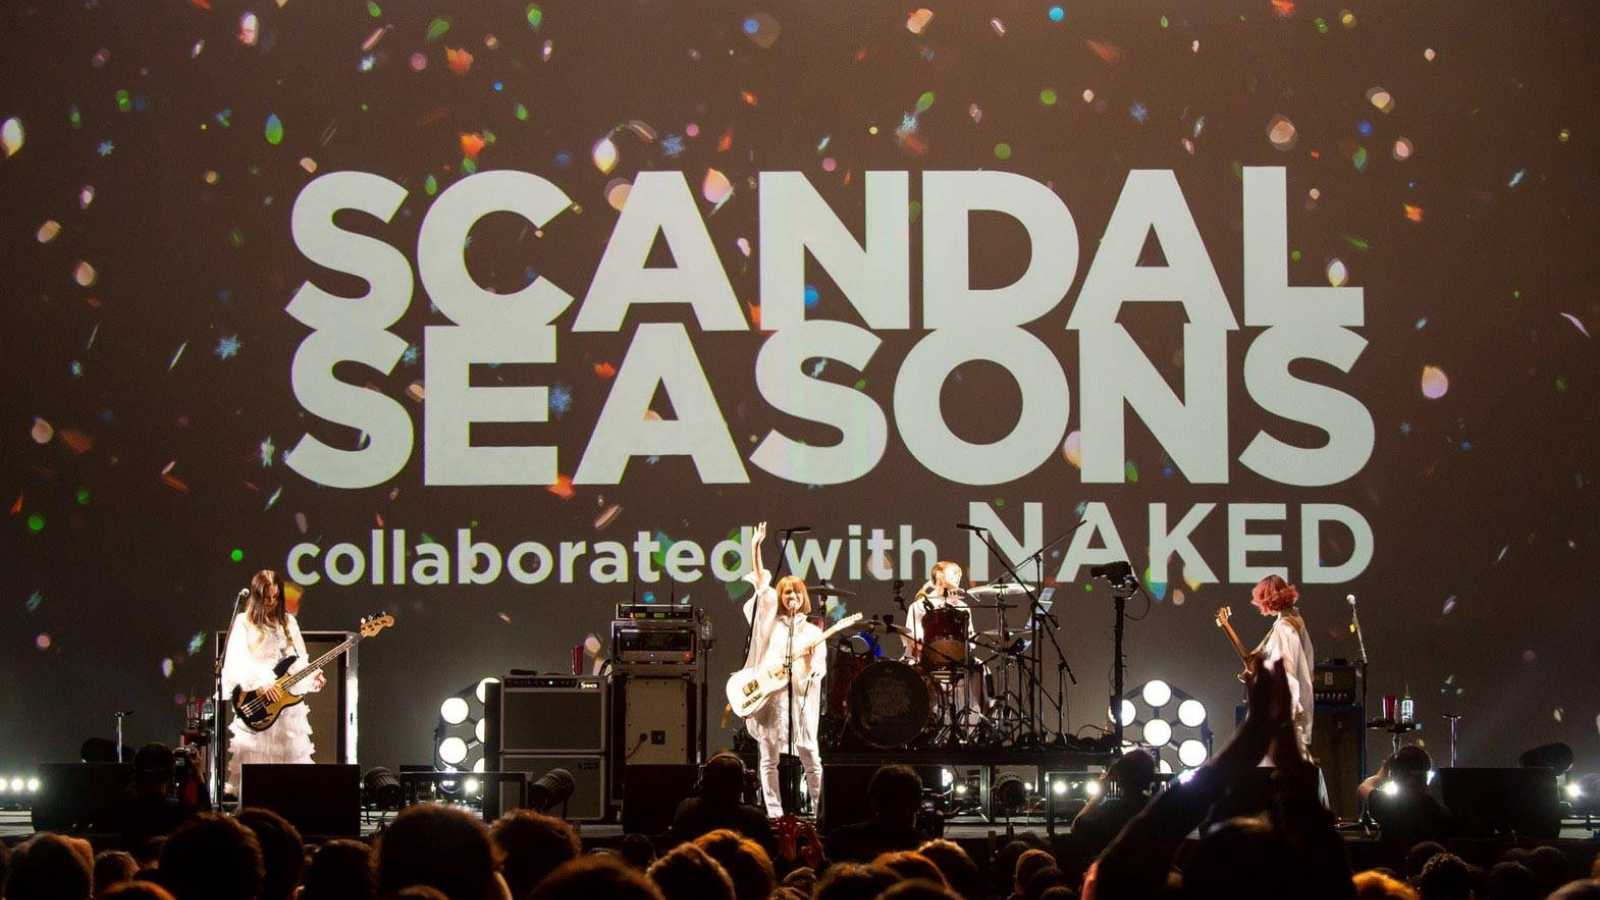 SCANDAL to Stream Special Live SEASONS Worldwide © SCANDAL All rights reserved.